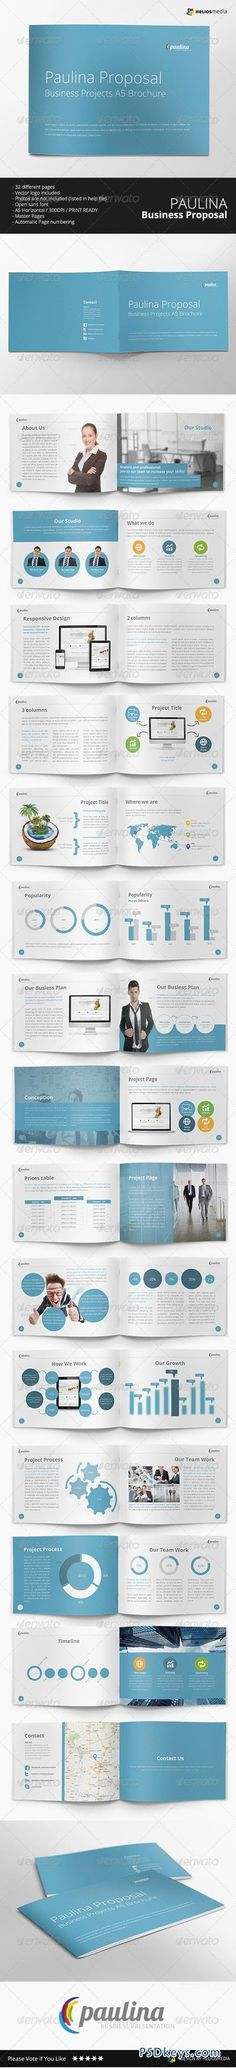 Neue - Business Proposal Business proposal, Proposals and - business proposal download